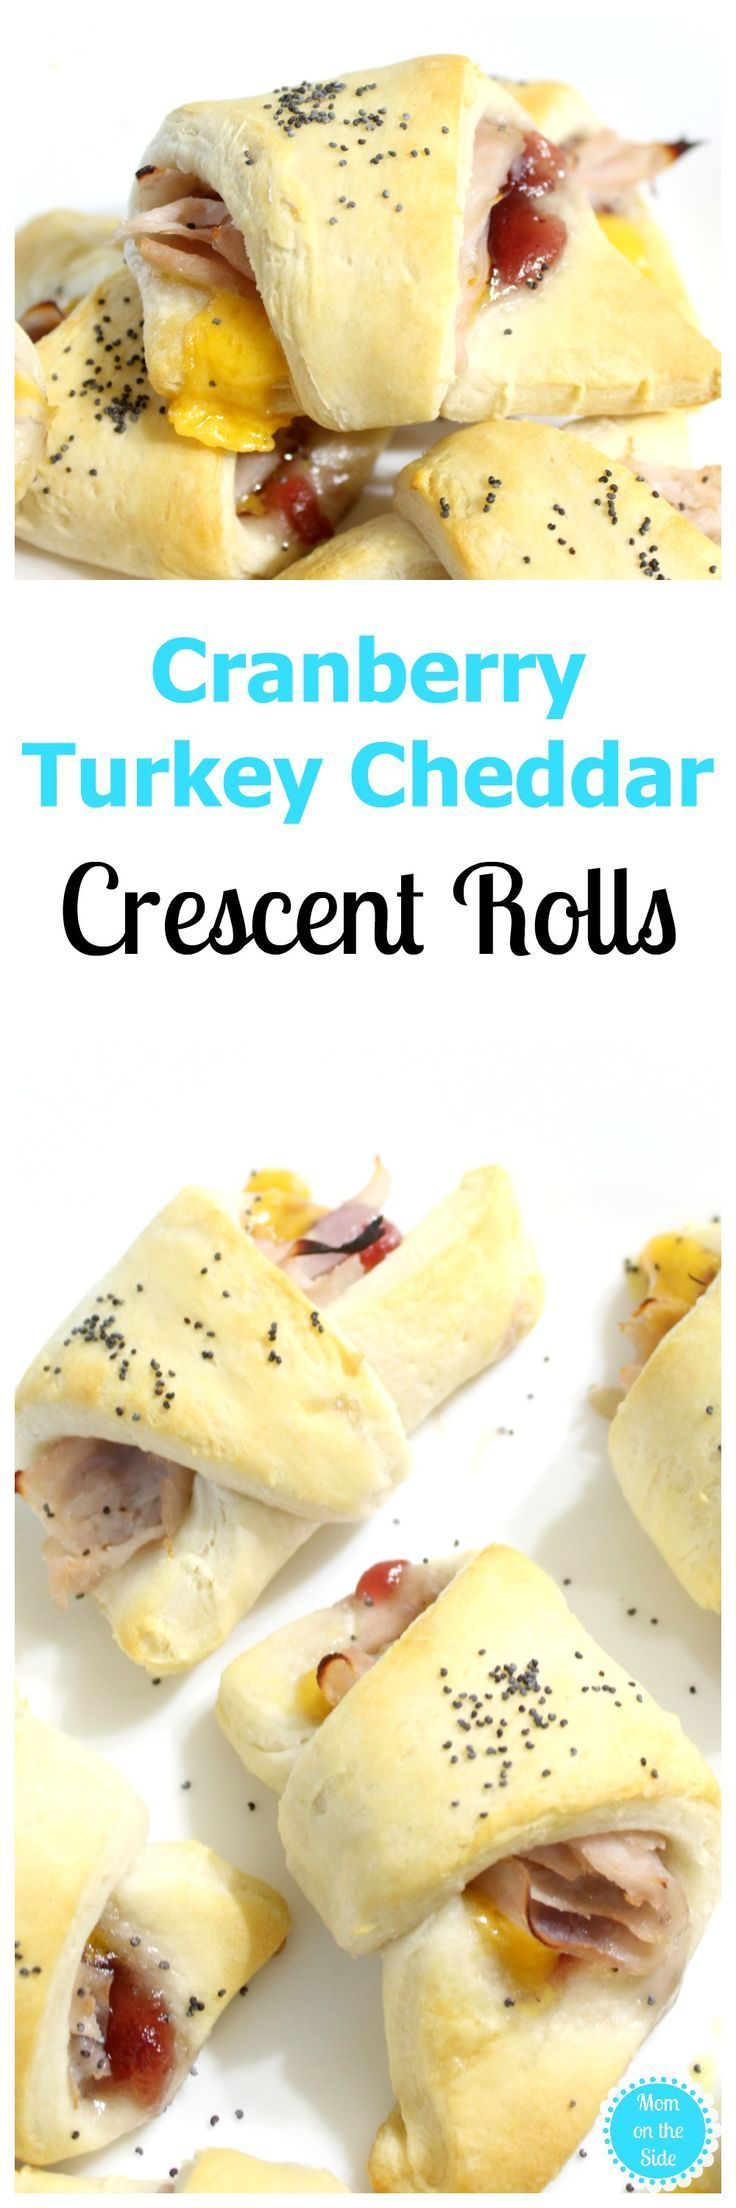 Thanksgiving Recipe for Cranberry Turkey Cheddar Crescent Rolls that are a great appetizer or perfect for leftover turkey after Thanksgiving dinner! #ad #immaculatebaking #thanksgiving #recipes #recipeoftheday #recipeideas #thanksgivingdinner #thanksgivingrecipes #cranberry #crescentrolls #baking